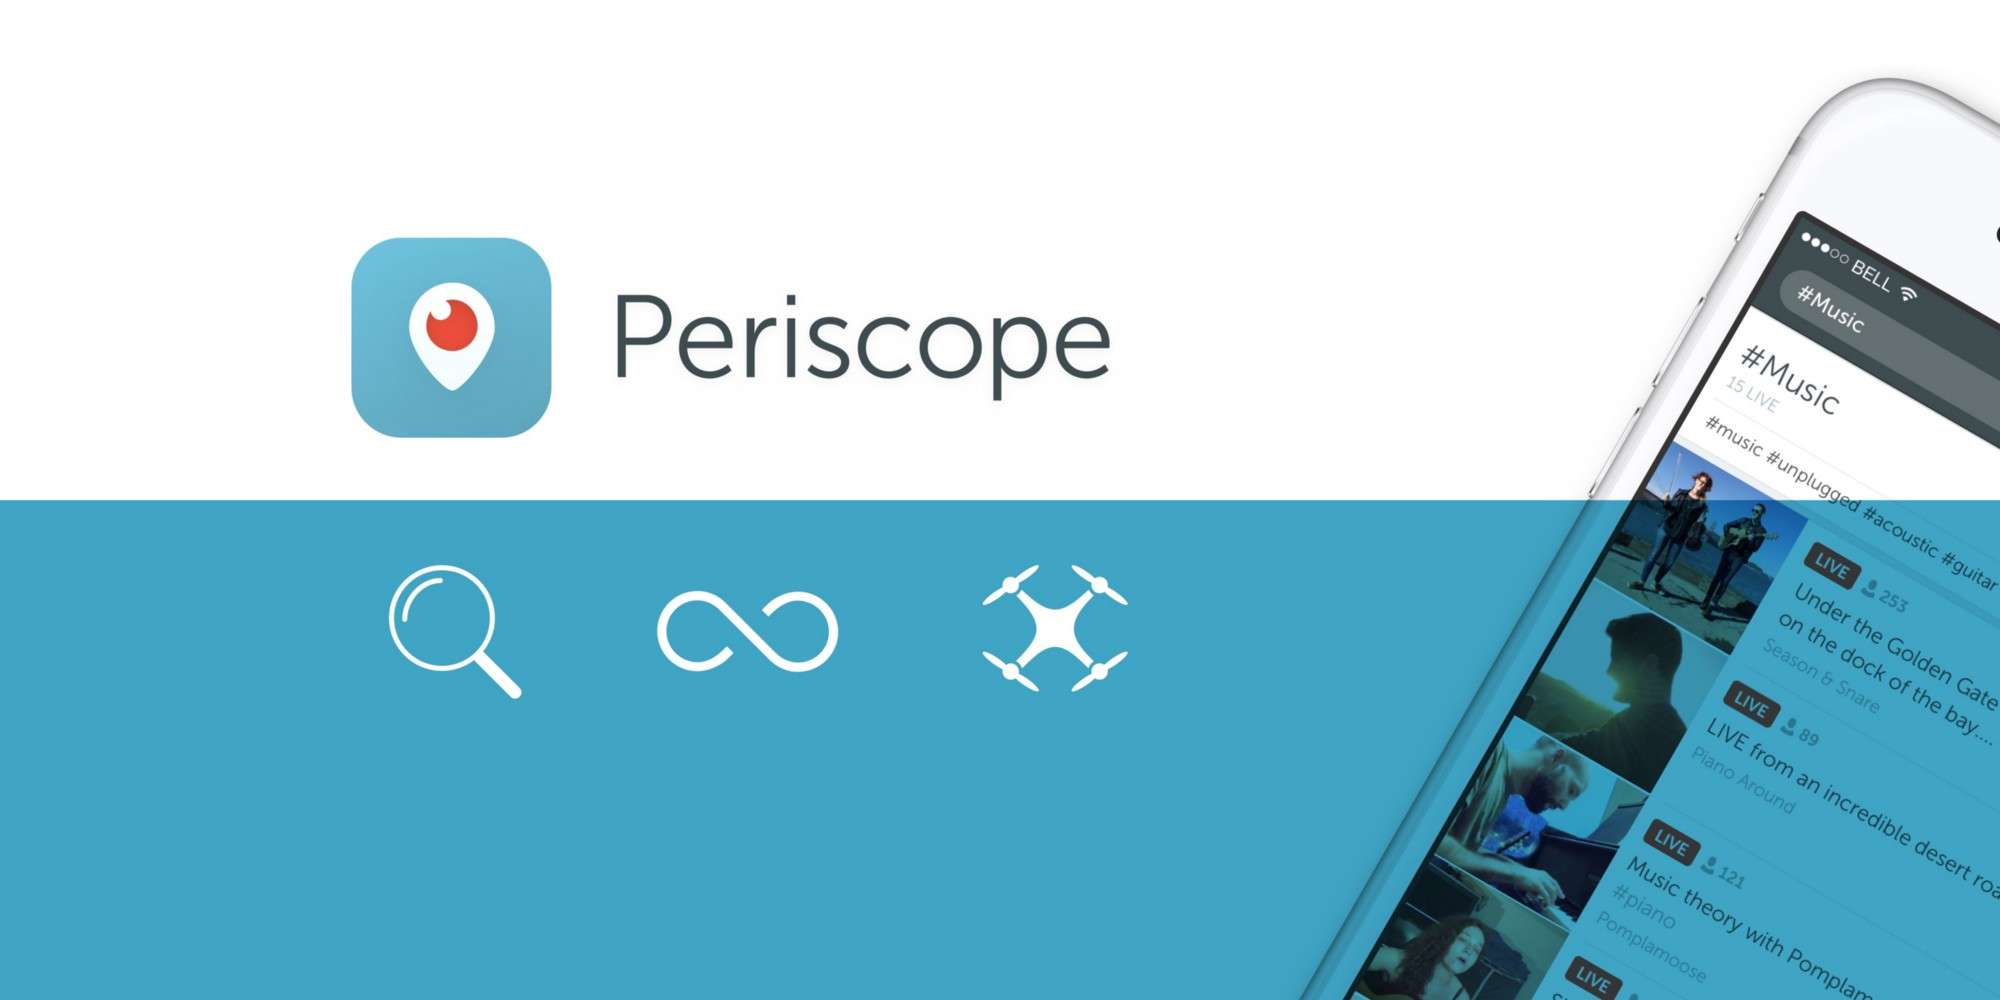 Broadcast from your GoPro, iPhone, or DJI drone with Periscope.